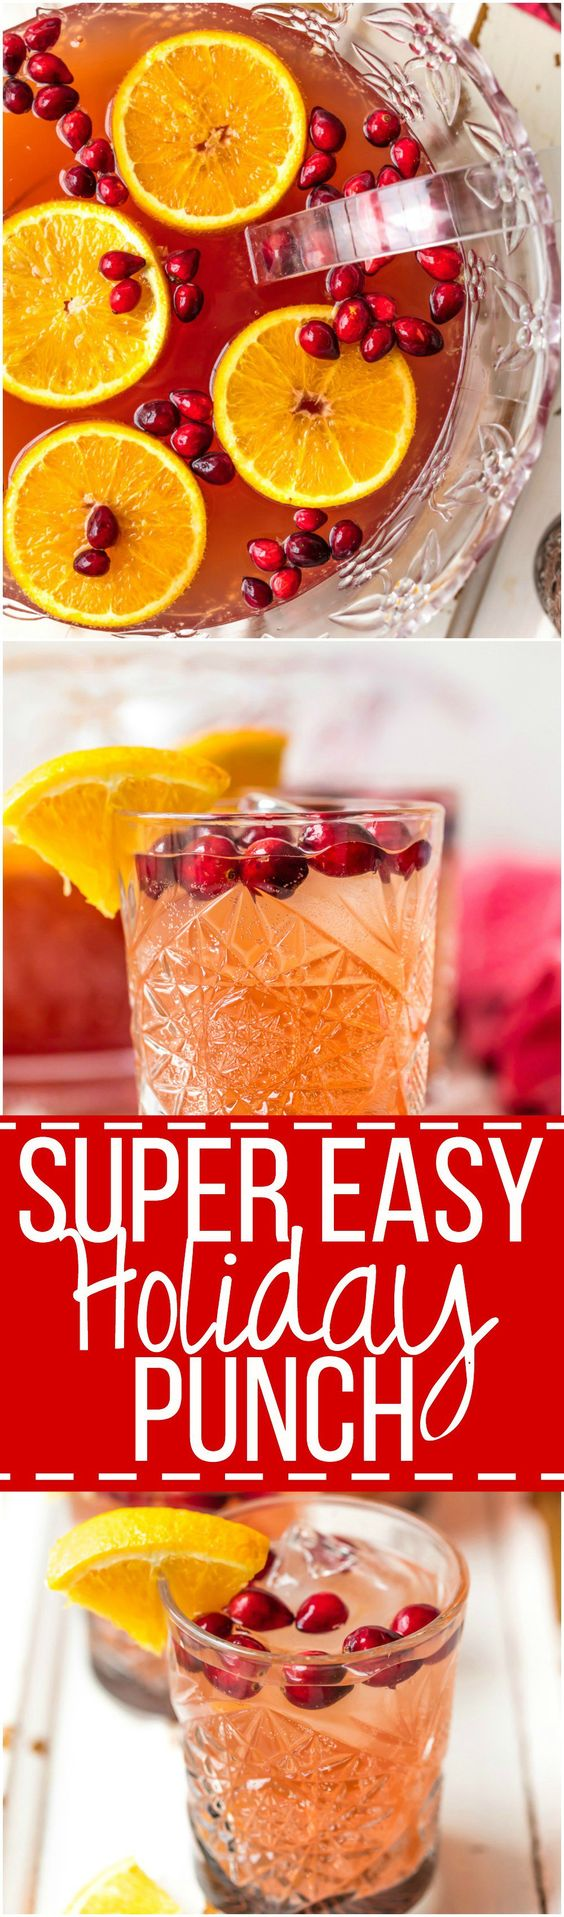 Easy holiday punch recipe thanksgiving party punches for Thanksgiving holiday drinks alcohol